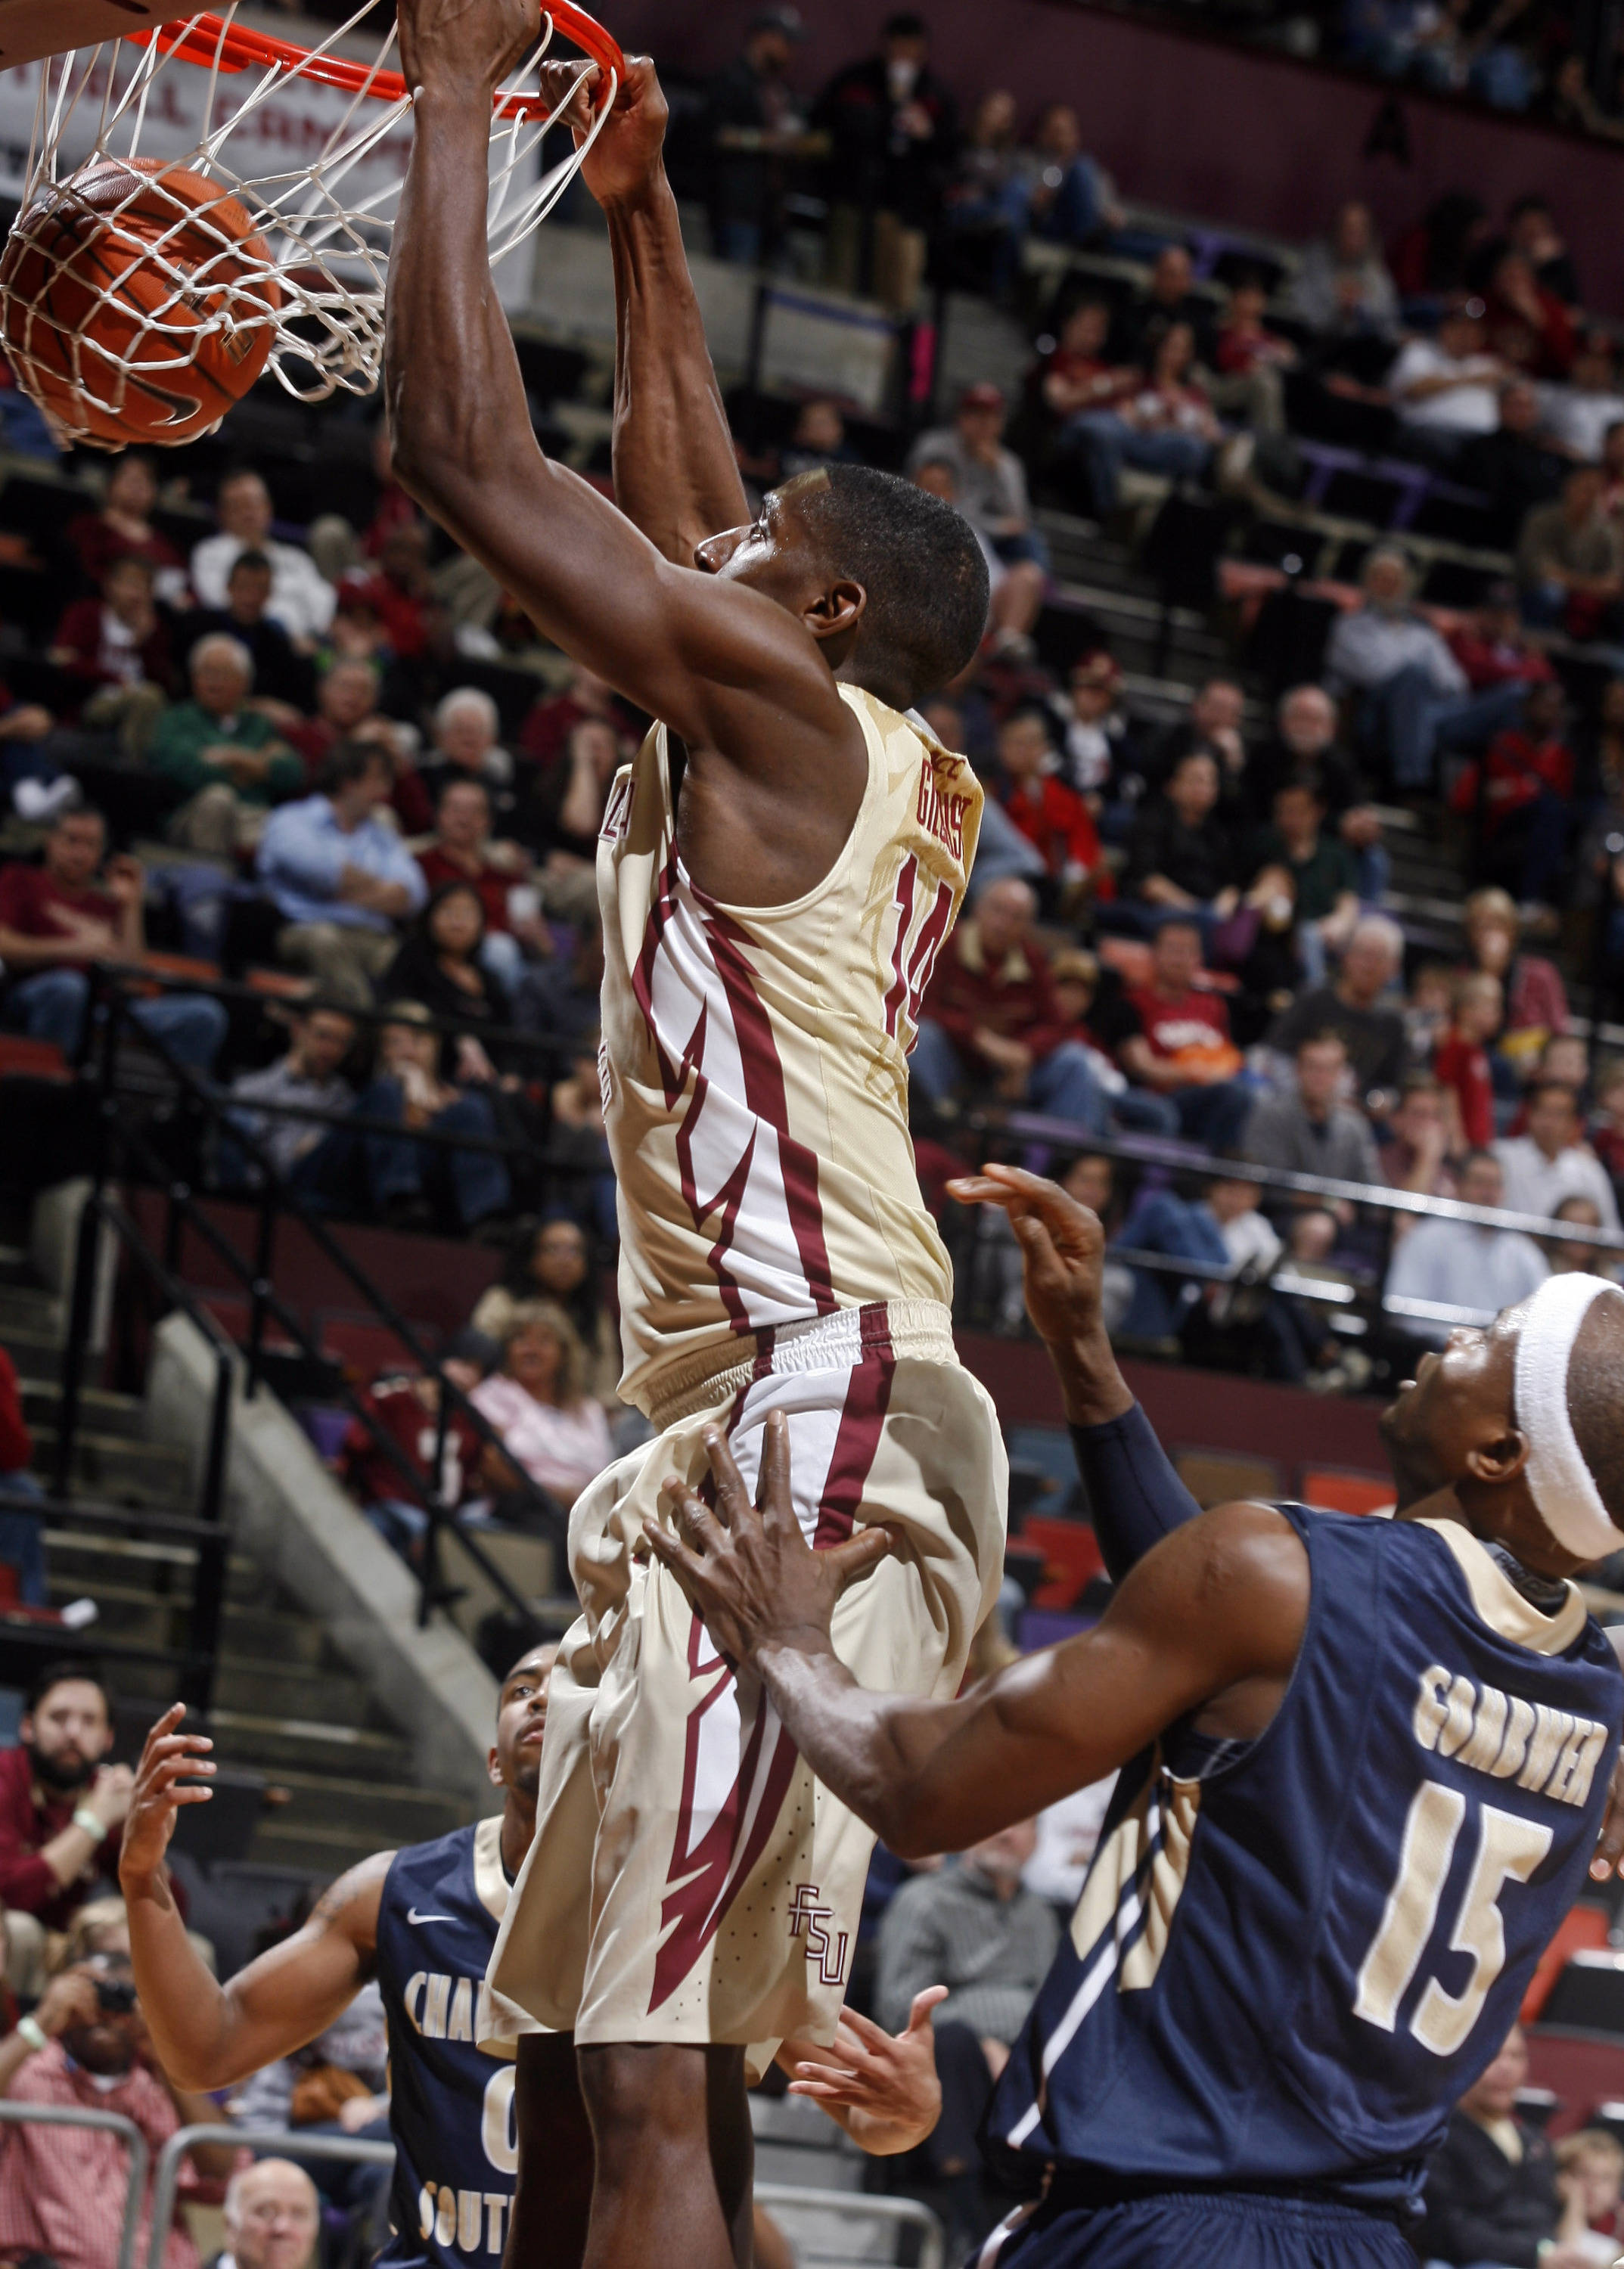 Florida State Seminoles forward Robert Gilchrist (14) dunks as Charleston Southern Buccaneers forward Paul Gombwer (15) watches in the second half. (Phil Sears-USA TODAY Sports)